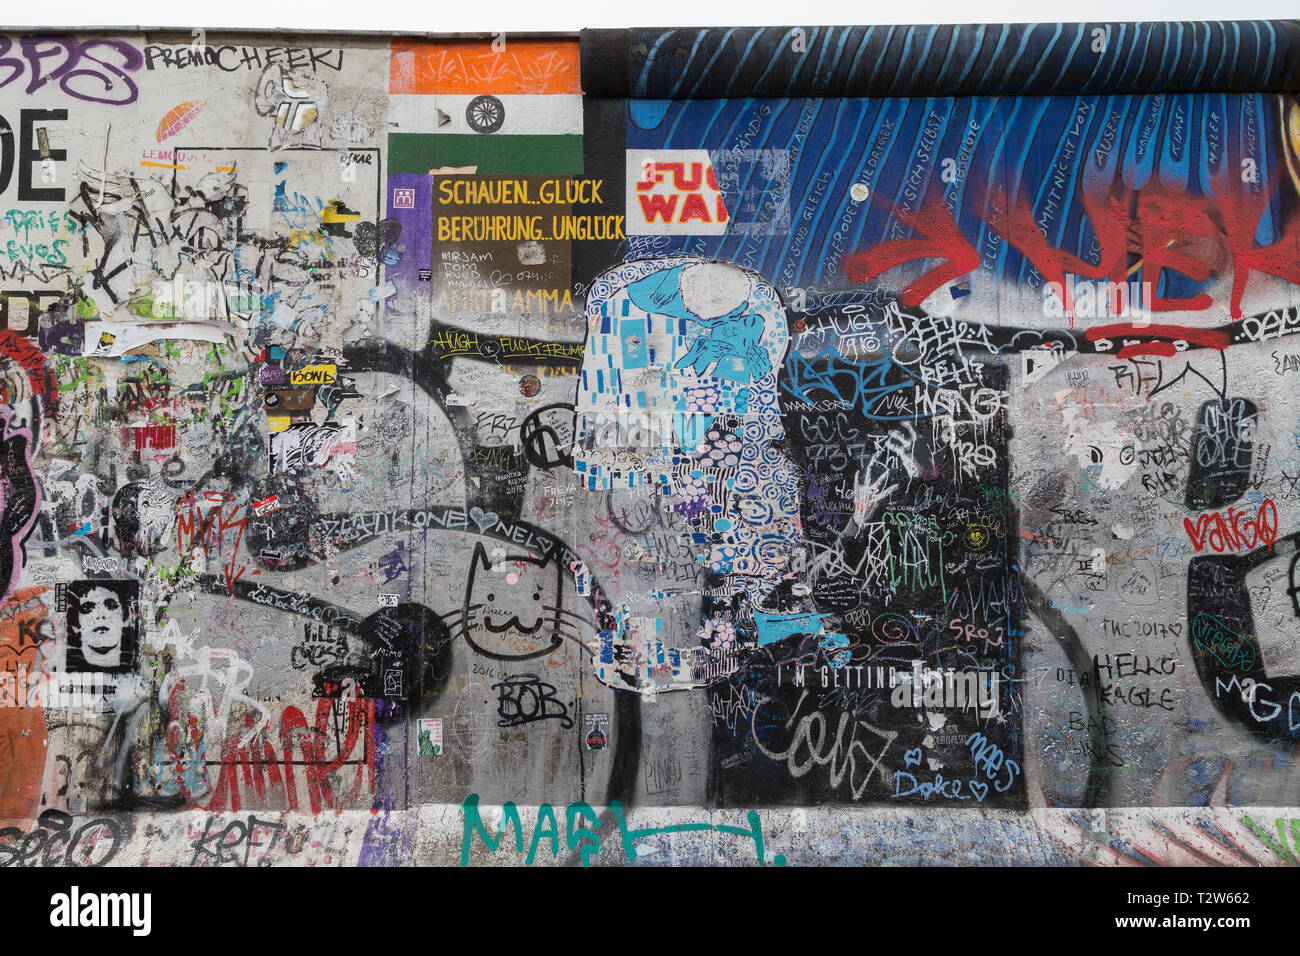 Front view of murals, graffiti, tags and writings at the East Side Gallery, section of the Berlin Wall in Berlin, Germany. Stock Photo